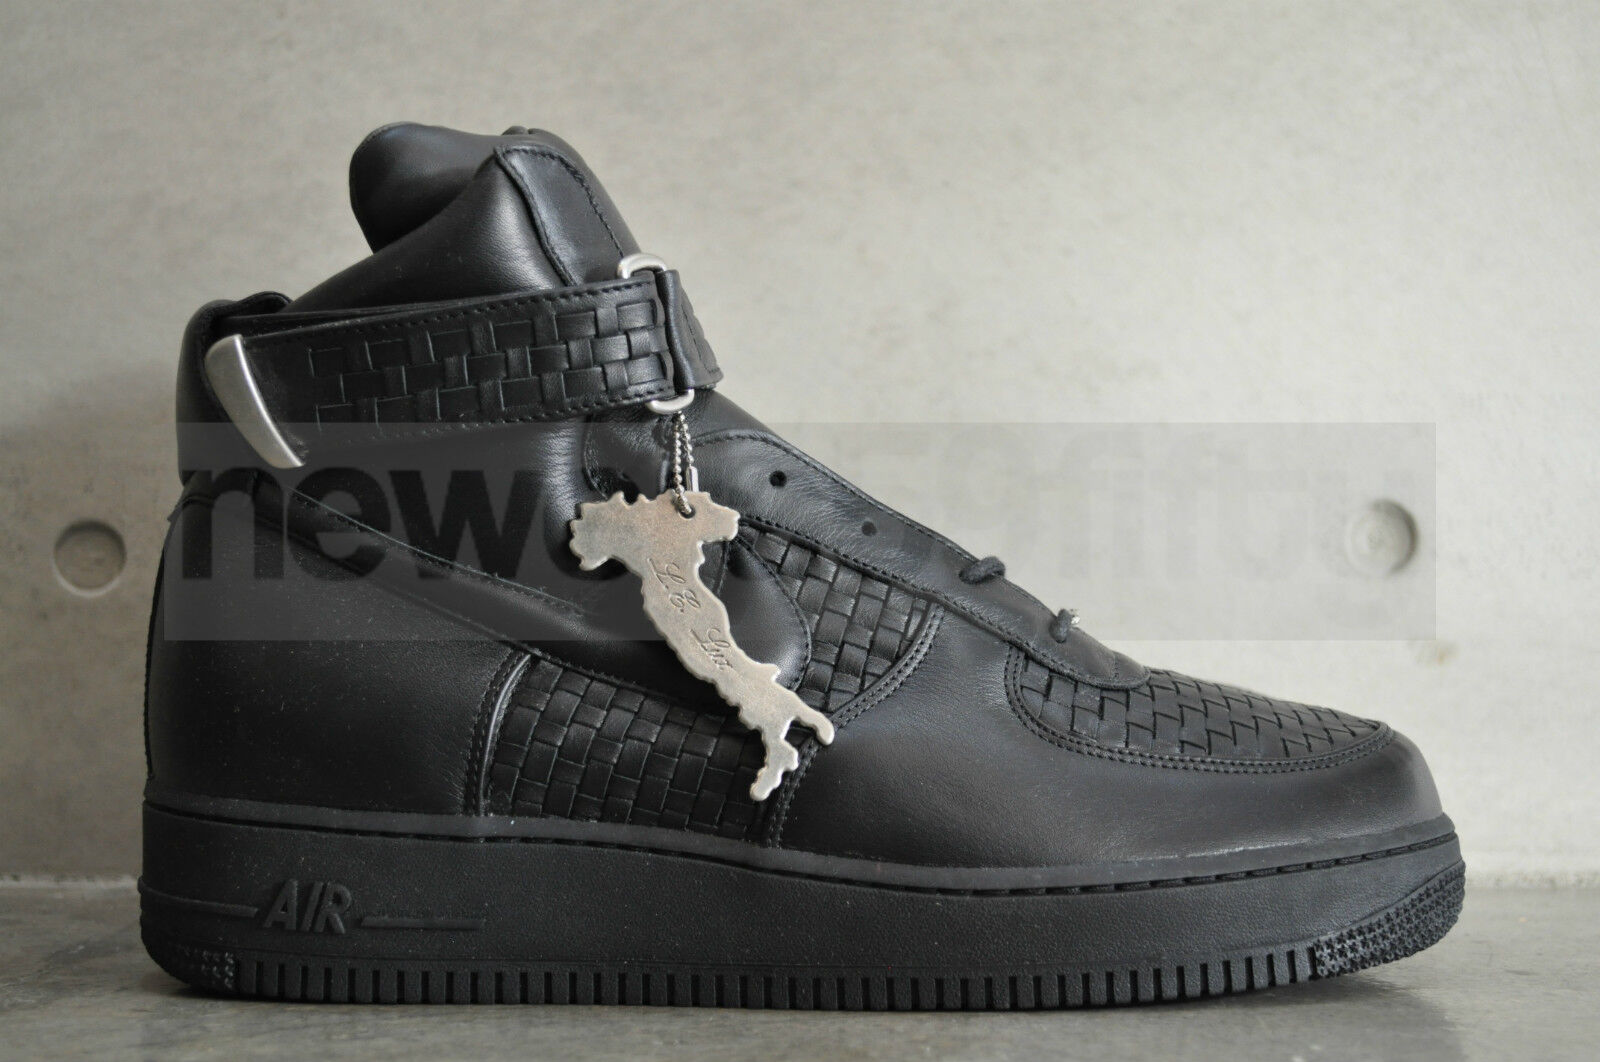 Nike Air Force 1 High Made Lux Made High In Italy - Noir / Noir 480fec